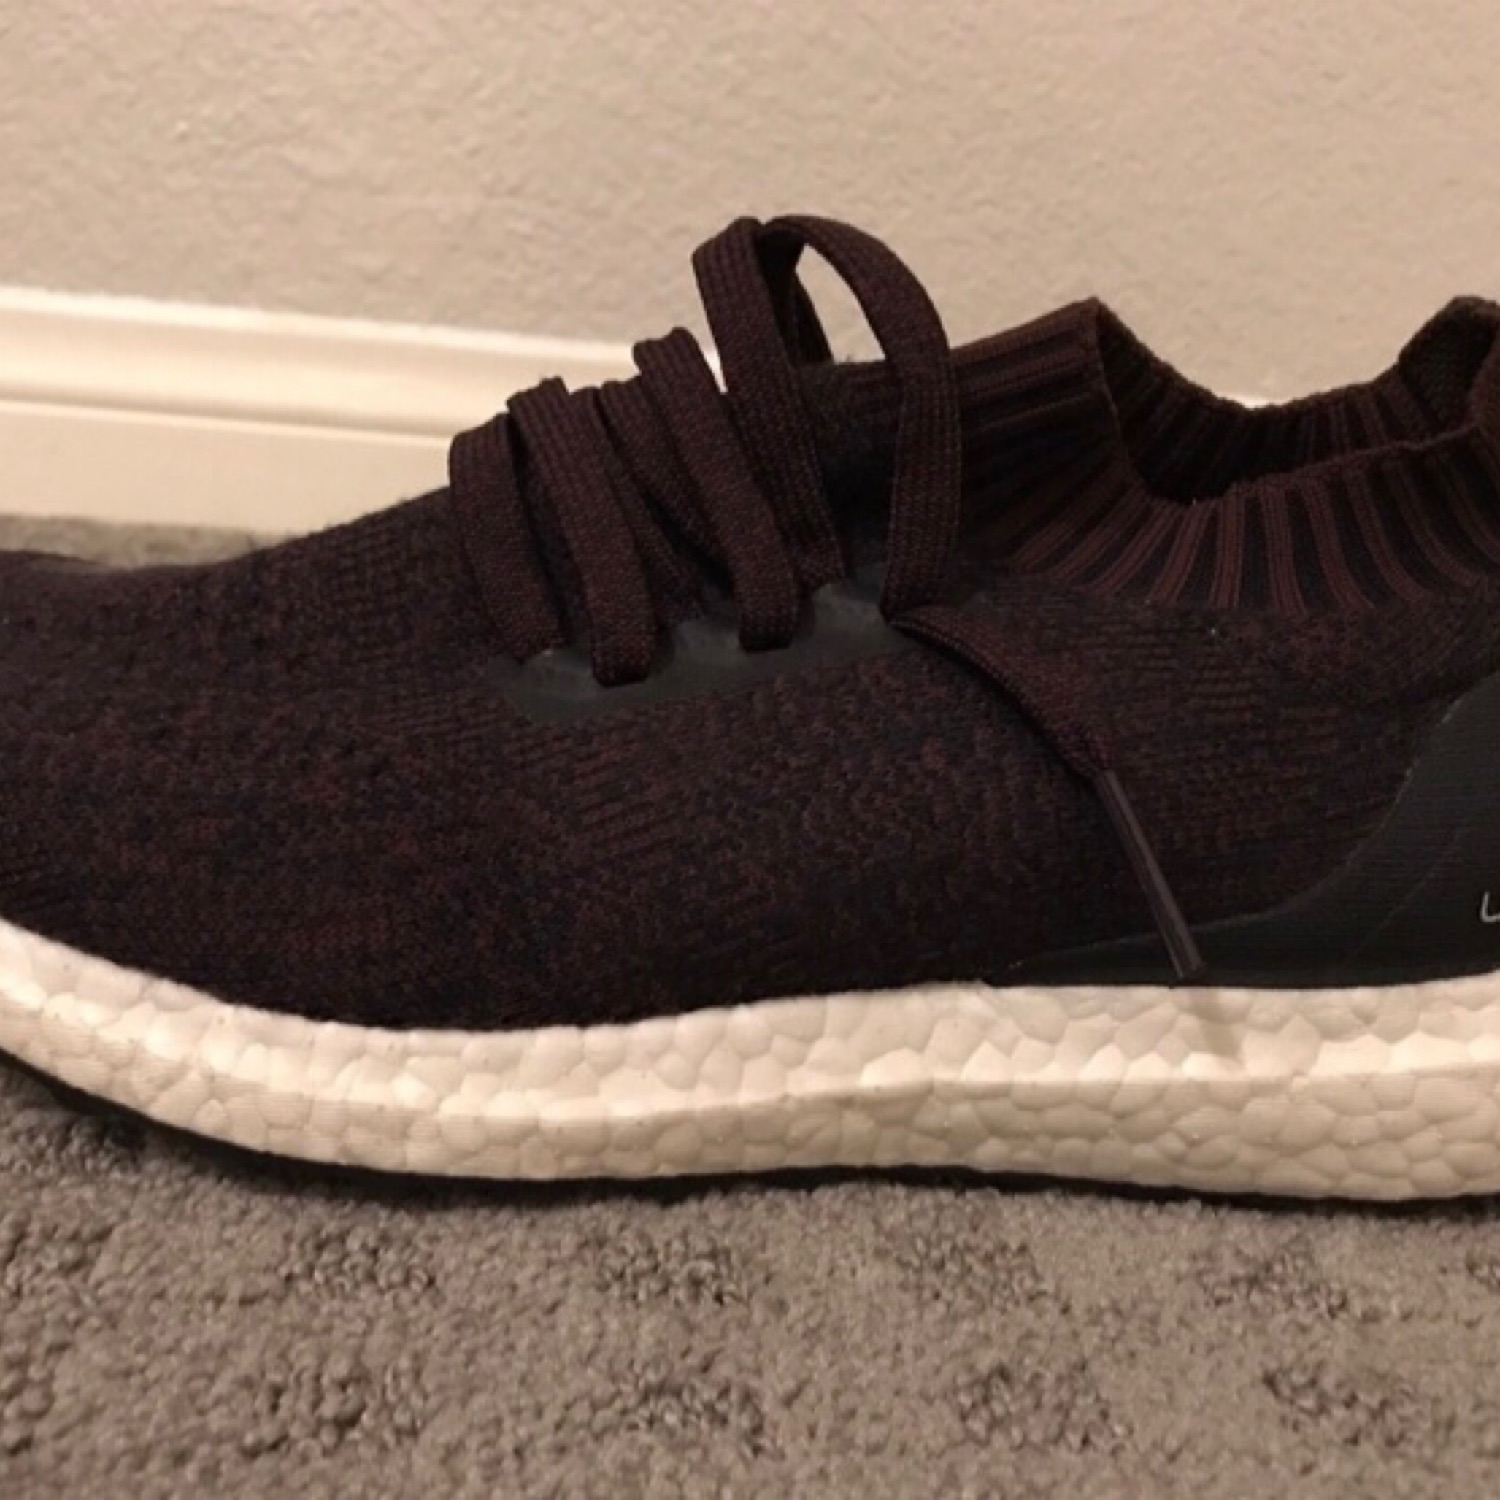 newest 19859 bcc37 Adidas Ultra Boost Uncaged Burgundy 8.5 Men's